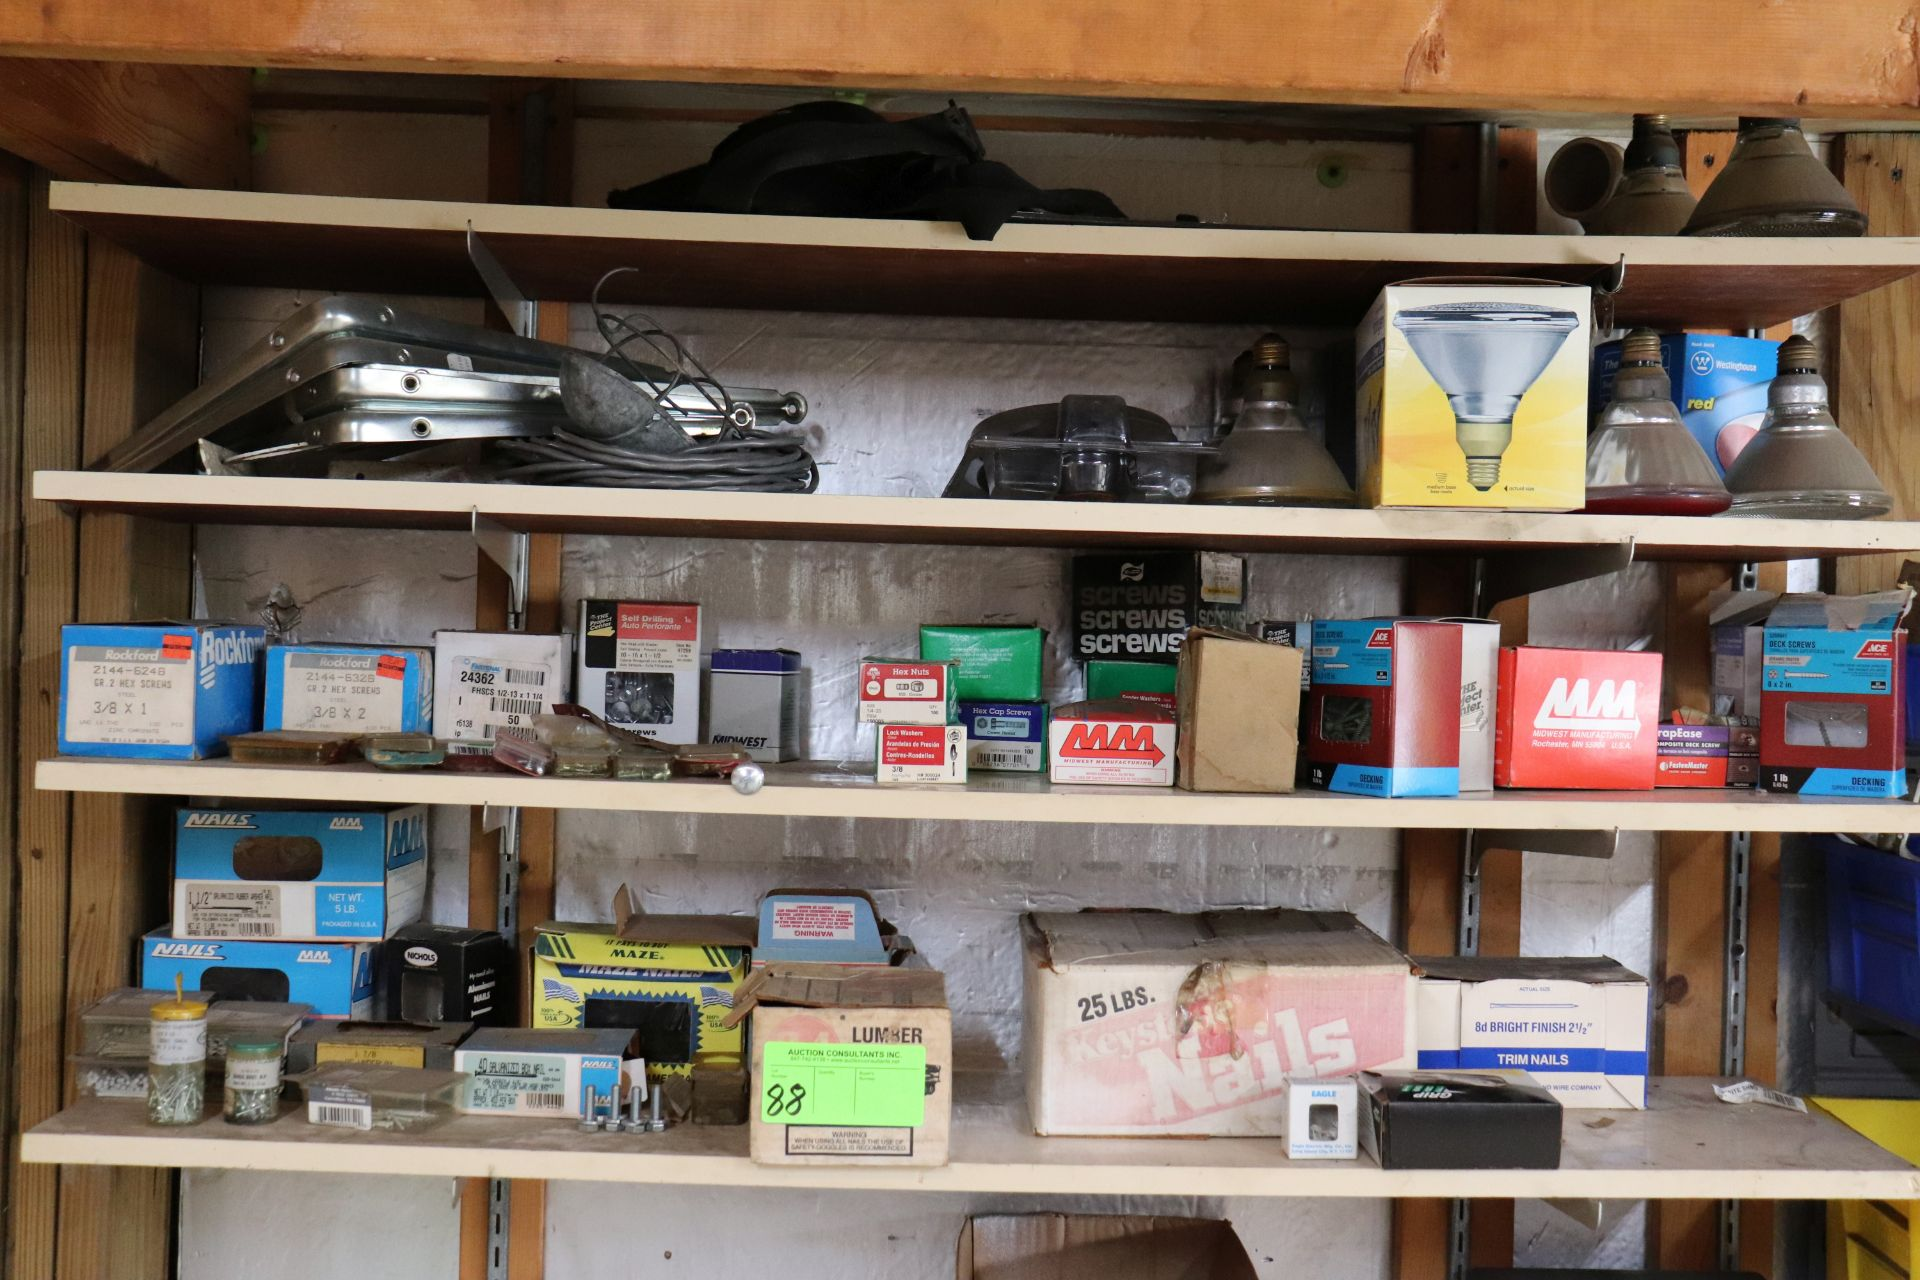 Miscellaneous hardware, fasteners and bulbs